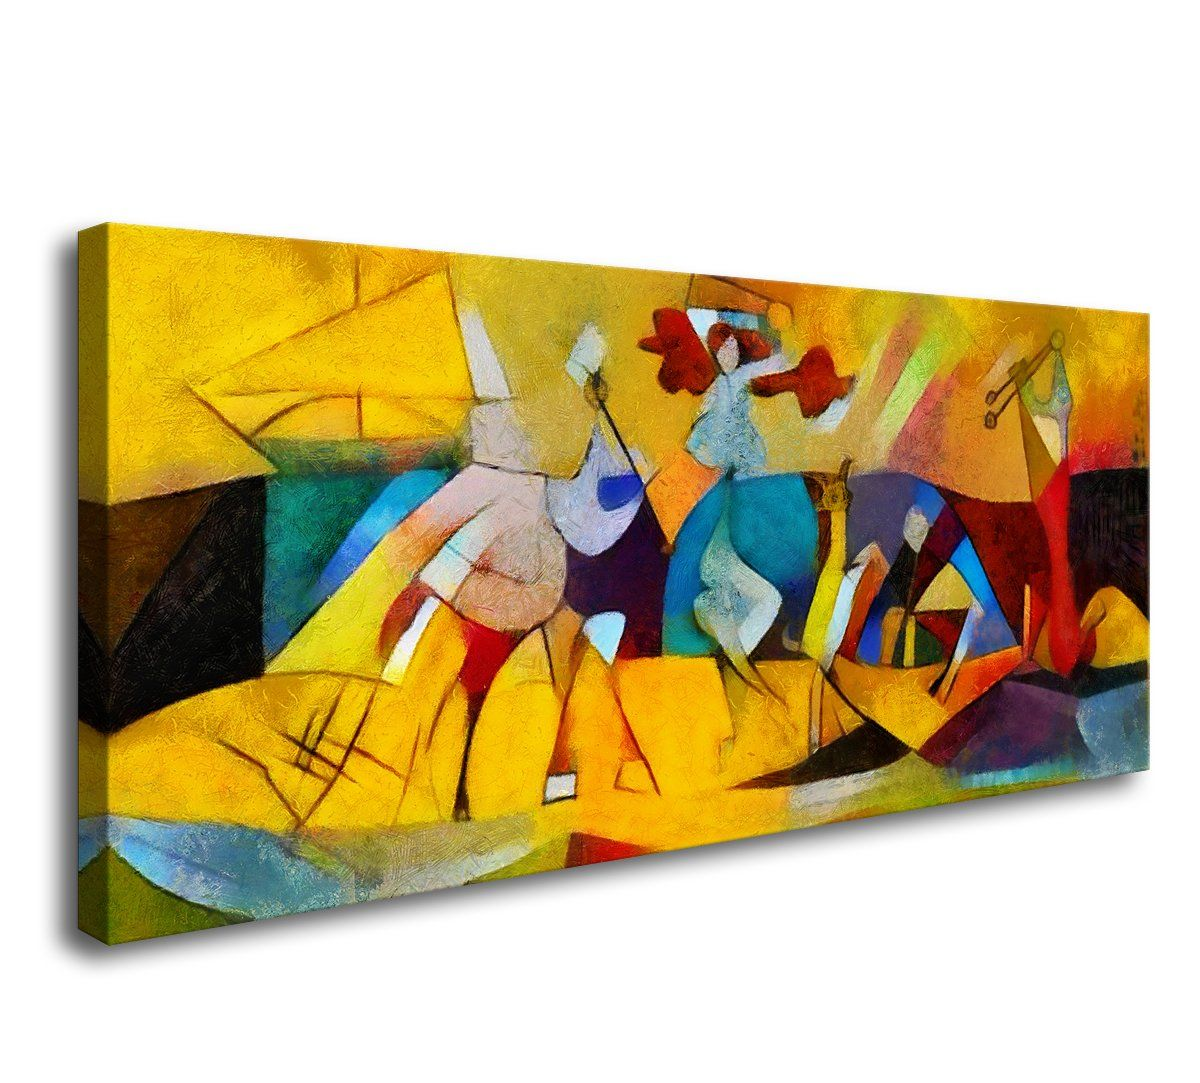 framed wall art abstract paintings canvas print painting for decor home also rh pinterest